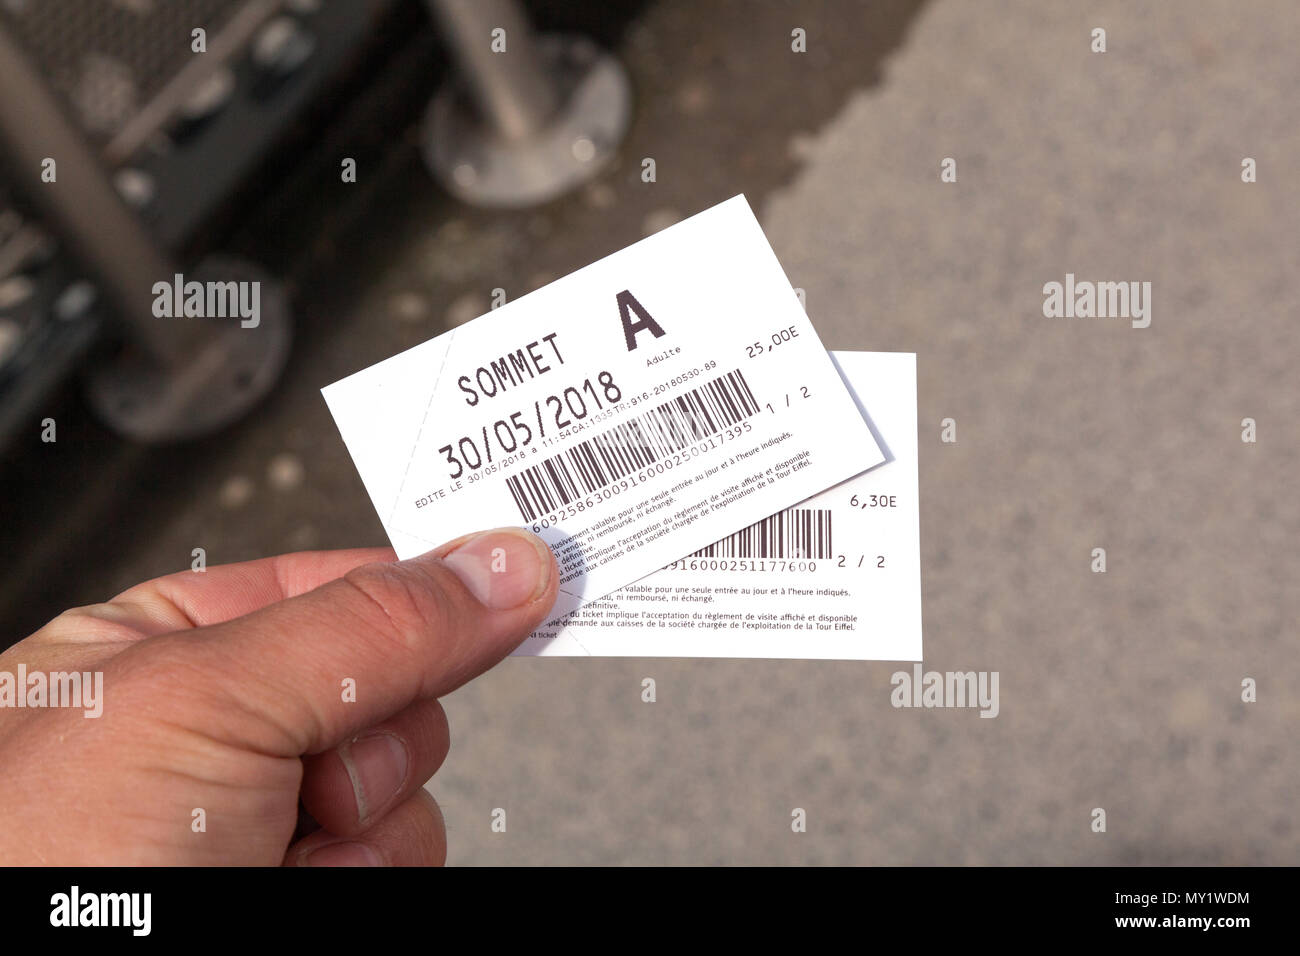 Tickets for the top of the Eiffel Tower, Paris, France, Europe. - Stock Image